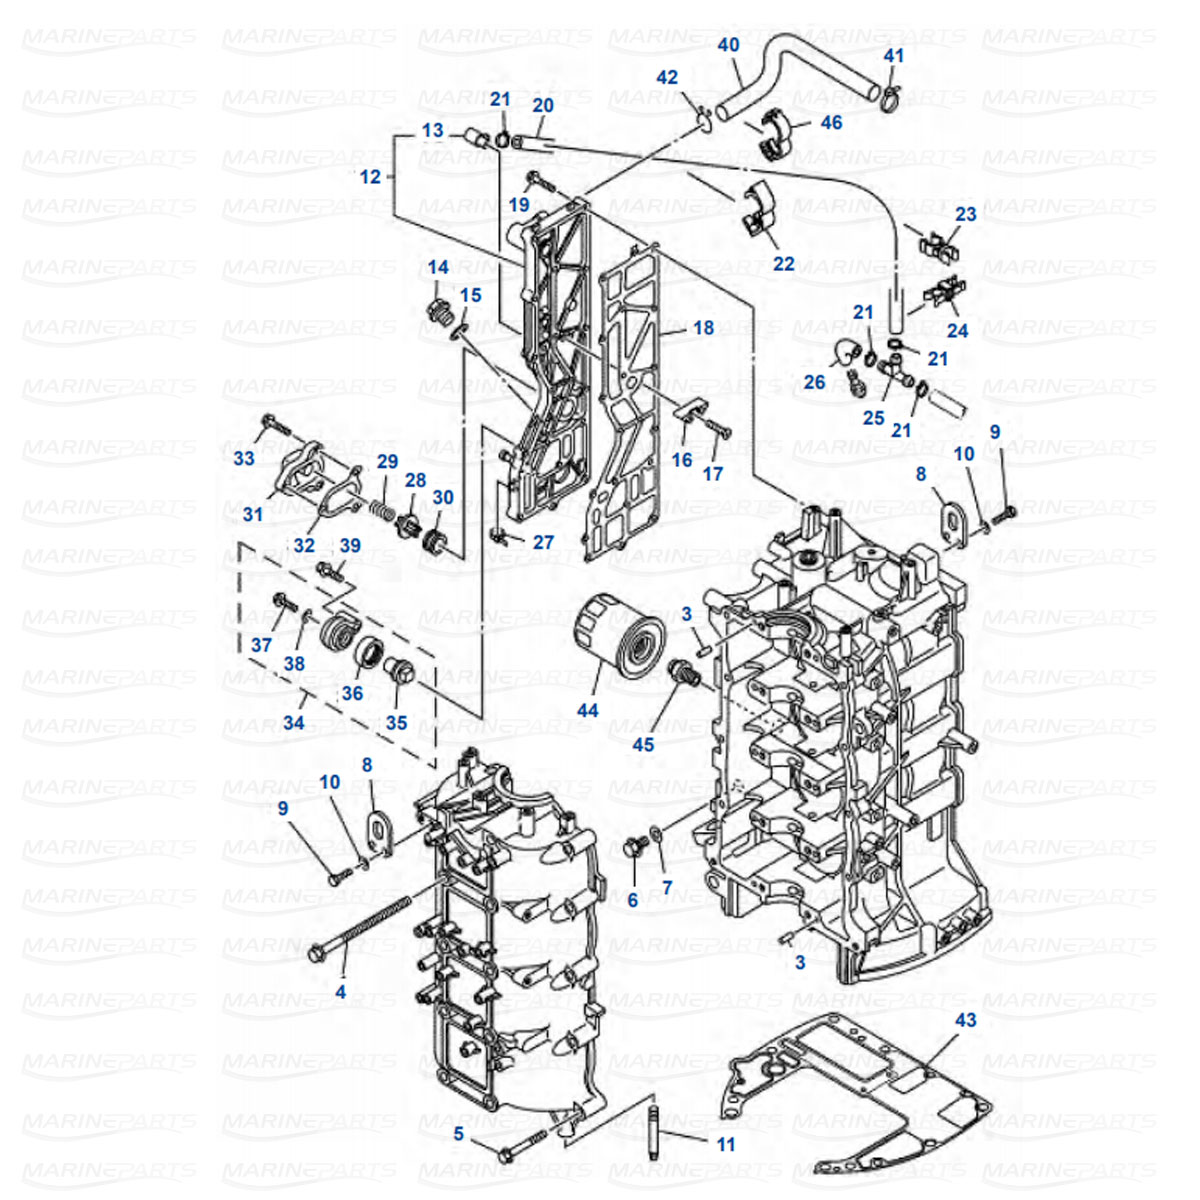 Yamaha engine parts for outboard motor, marineparts.eu